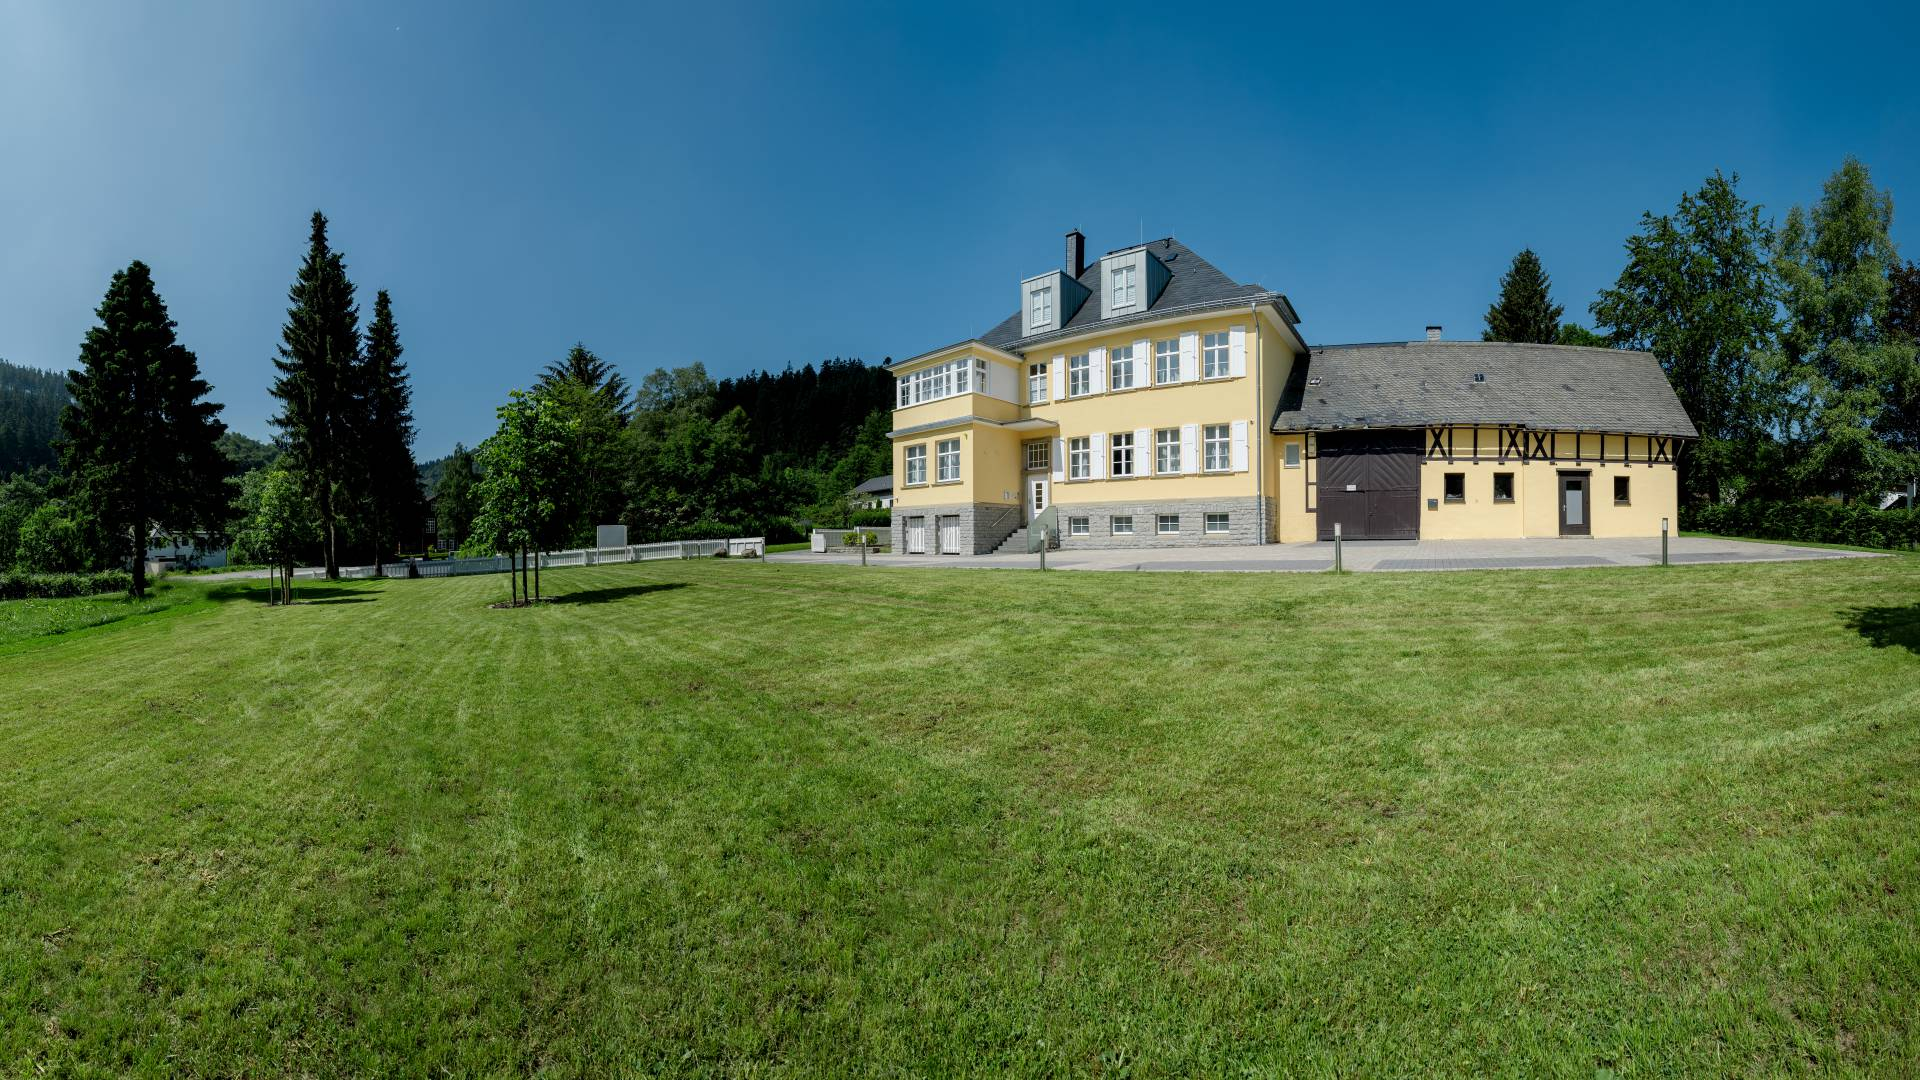 Residenz Itterbach in Willingen